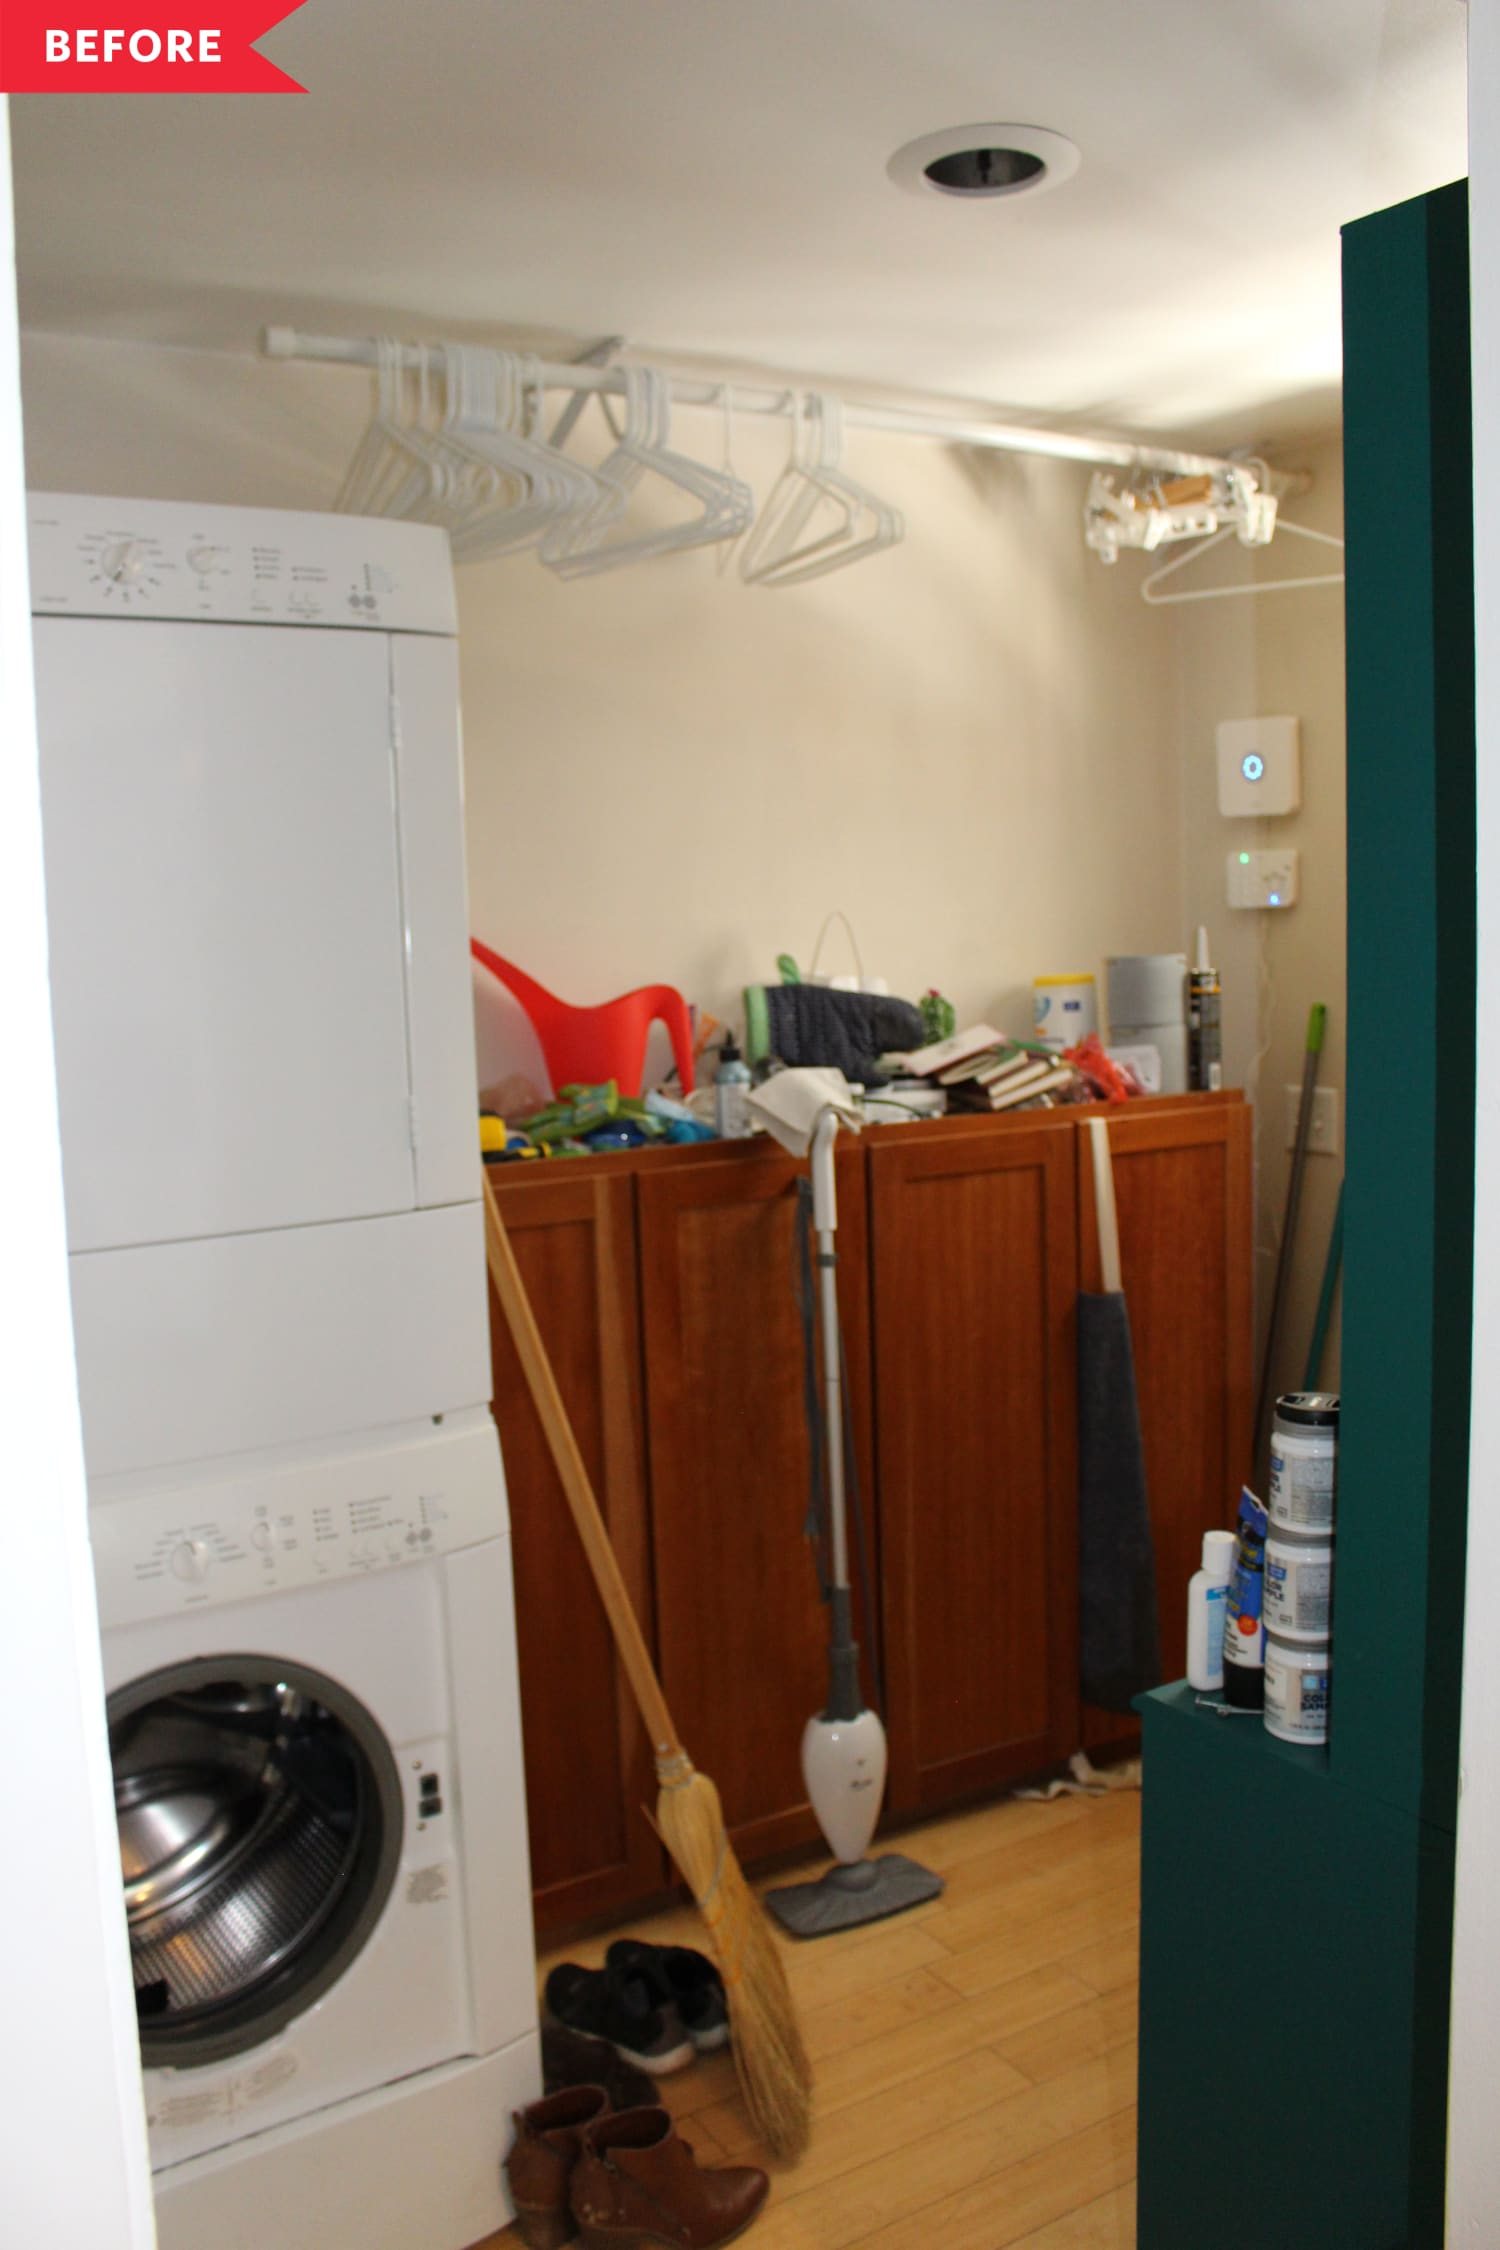 Before and After: A Dreamy IKEA Hack-Filled Laundry Room Redo for Just $500